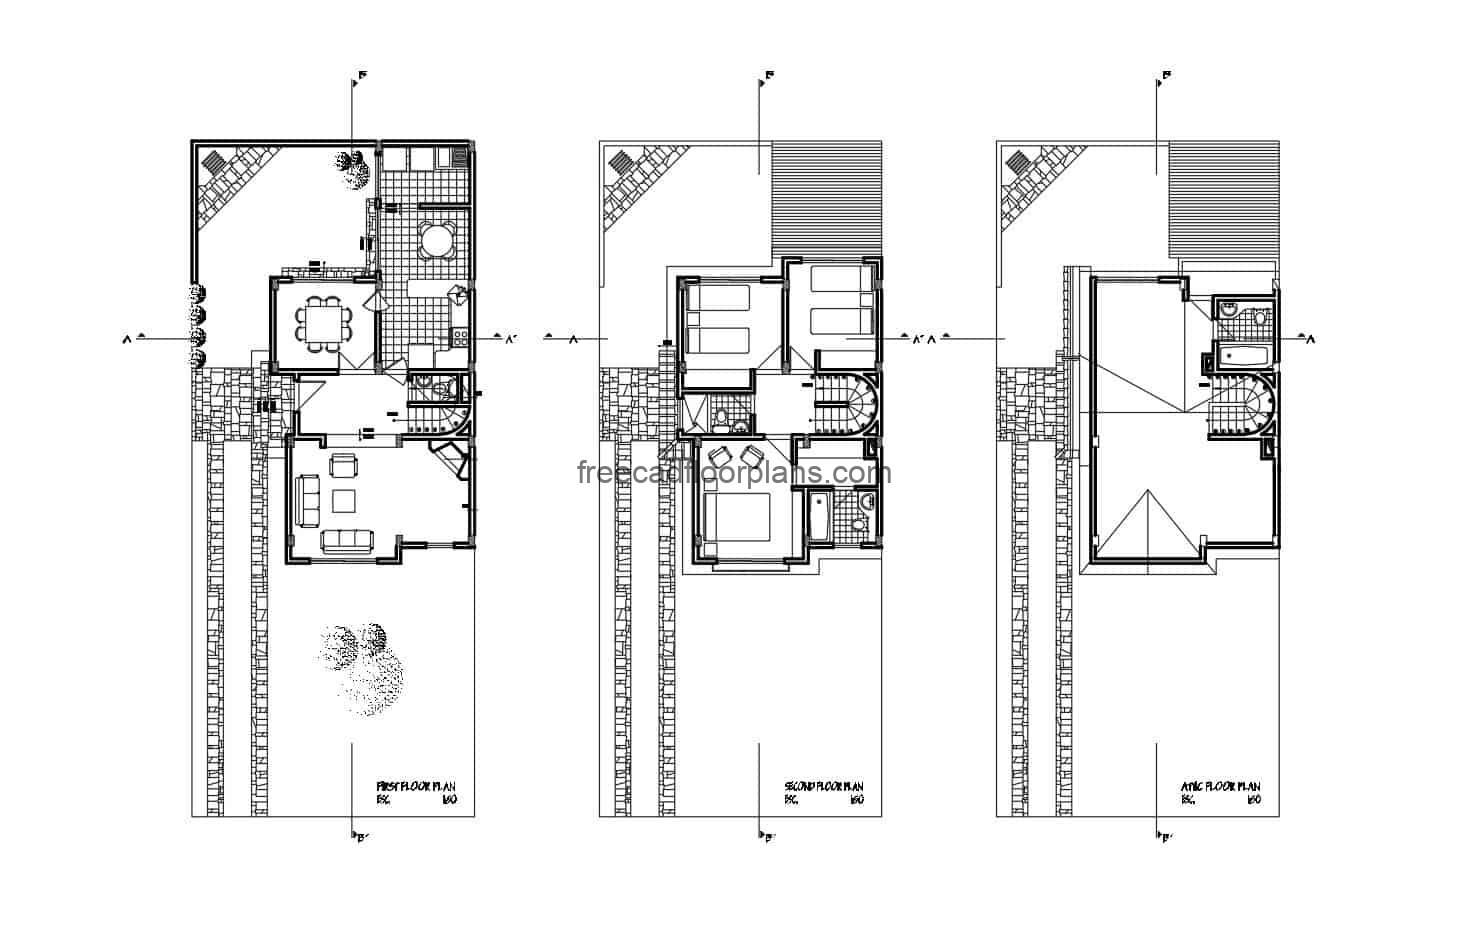 Complete architectural design of Two story house with attic with pitched roofs, internal layout cad blocks DWG